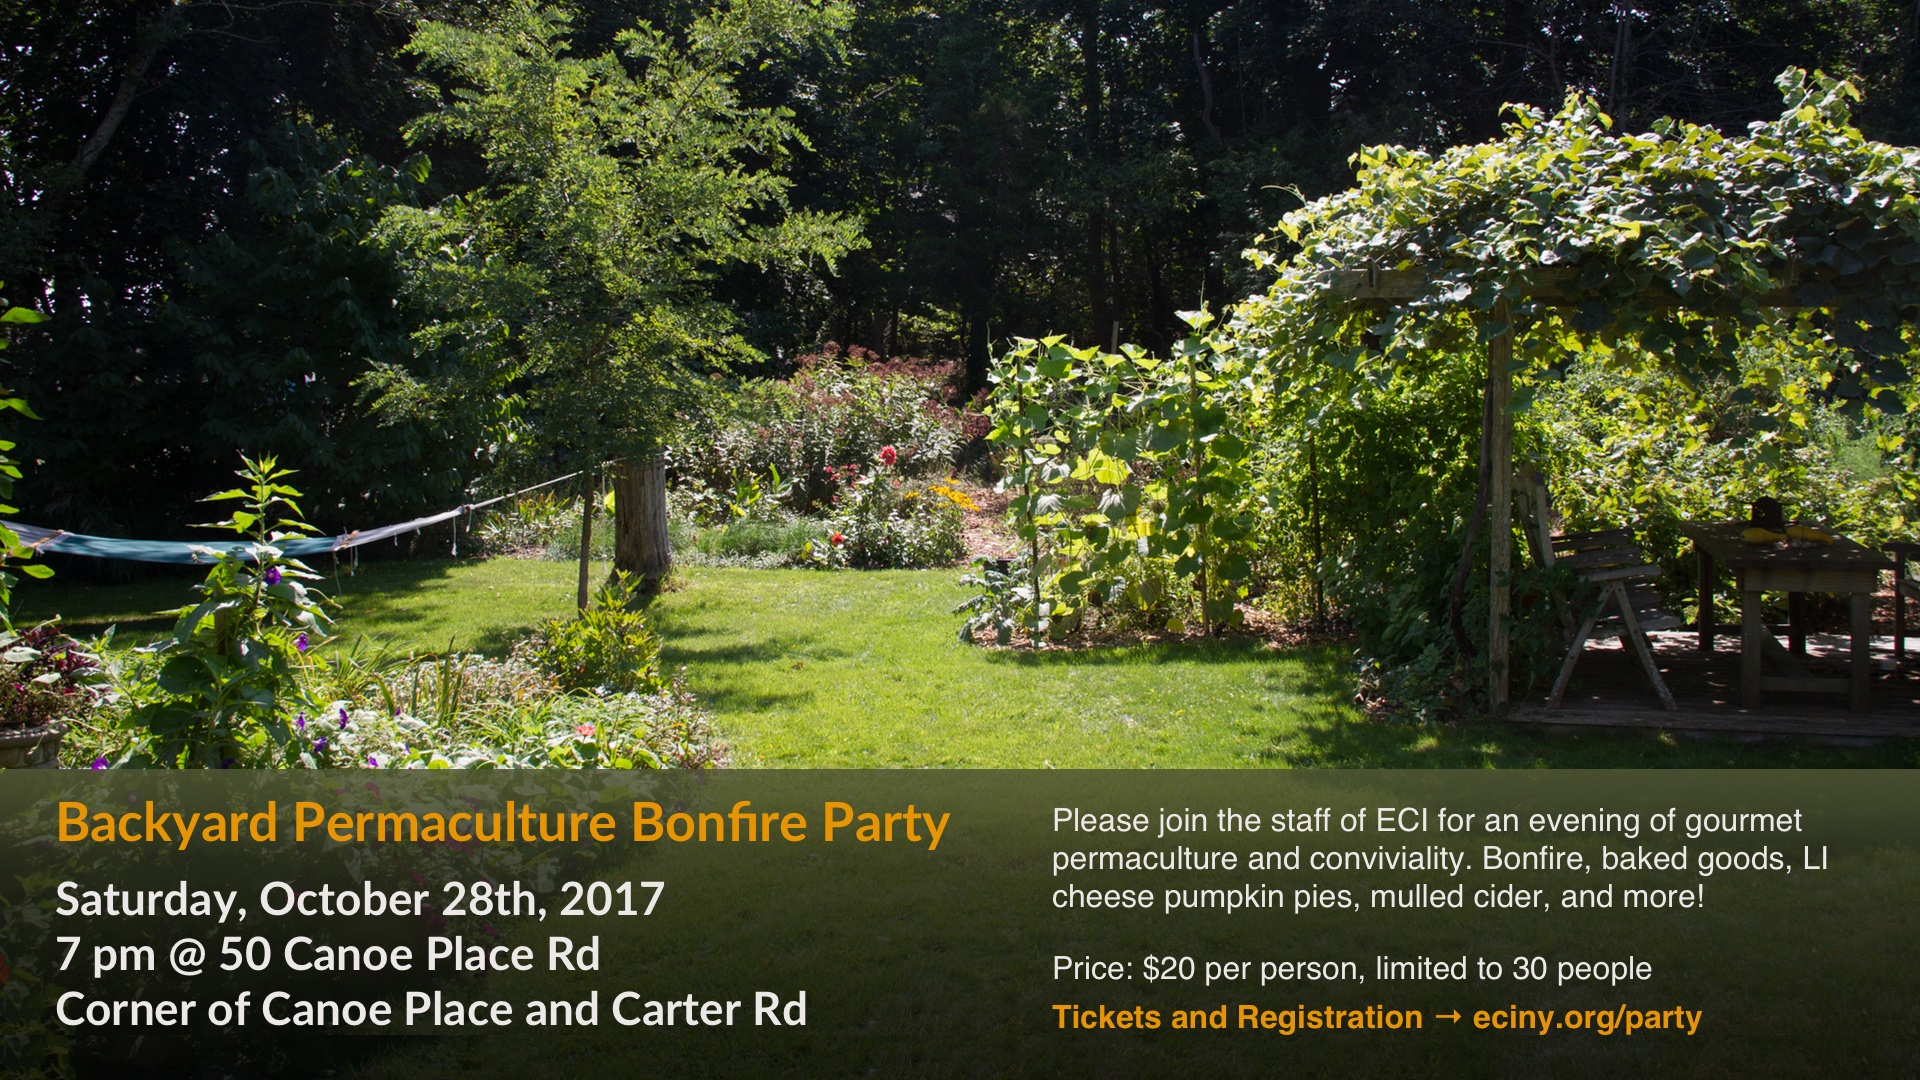 Backyard Permaculture Party - Oct 28th, 2017 - FB cover 1920x1080.jpg